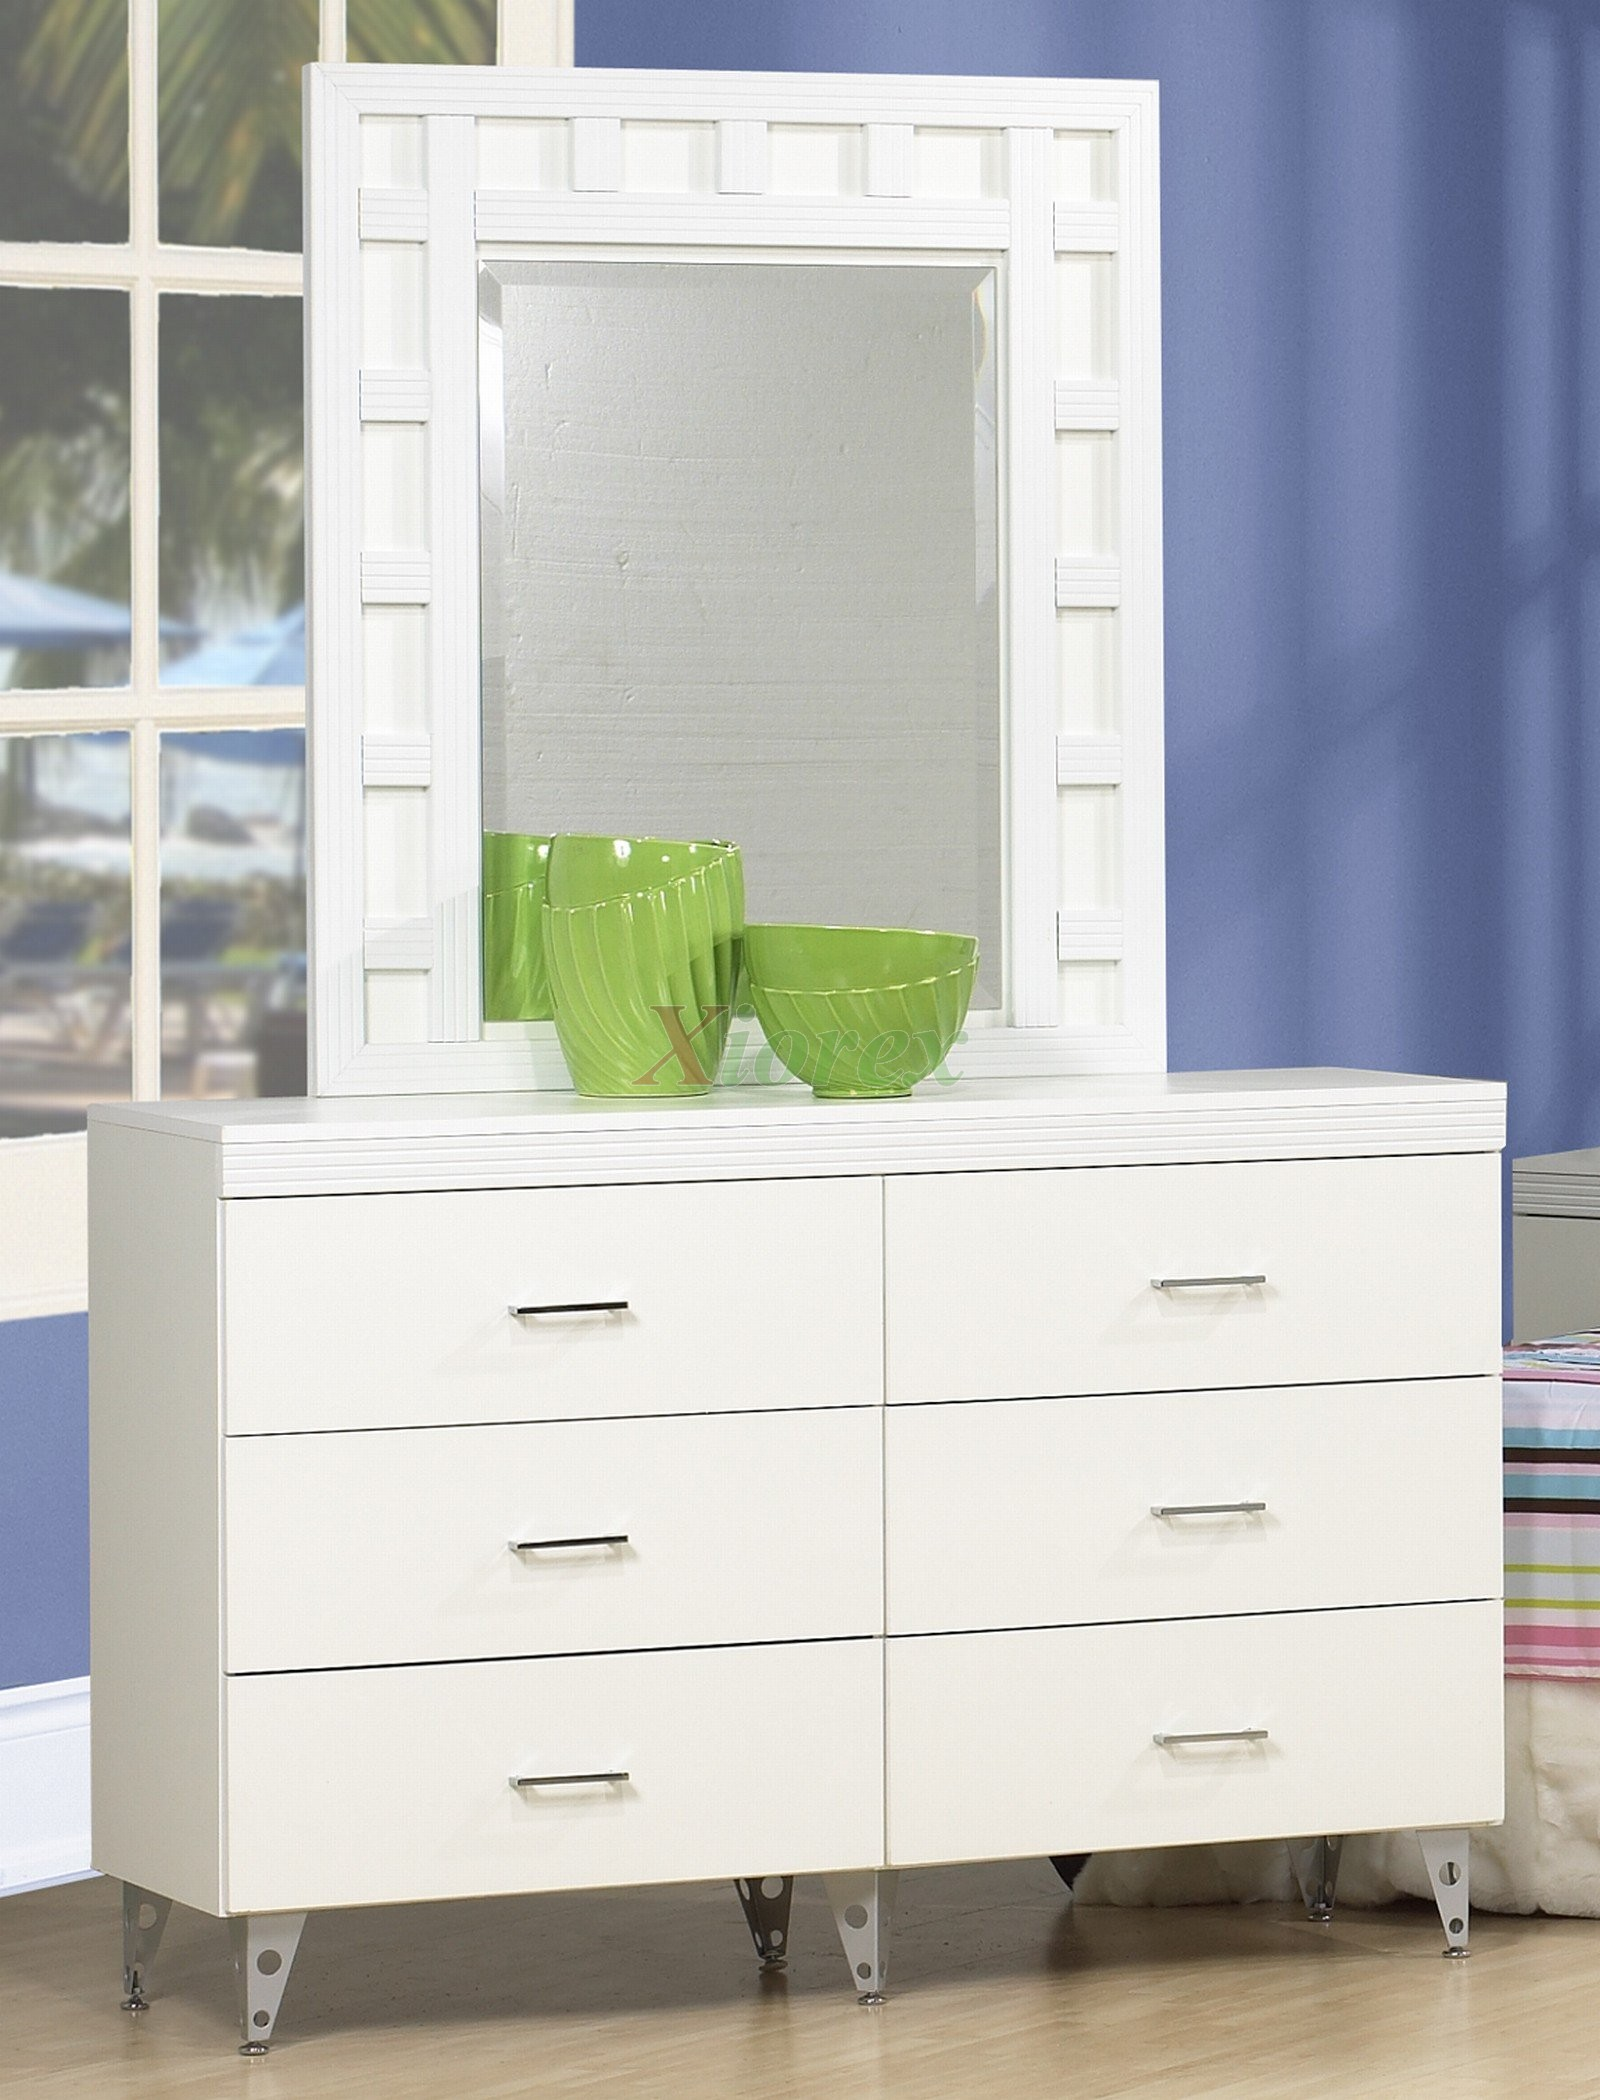 White Dresser Set Life Line Priscilla Is A Double That Comes With Six Ious Drawers Interiors And Chic Handles